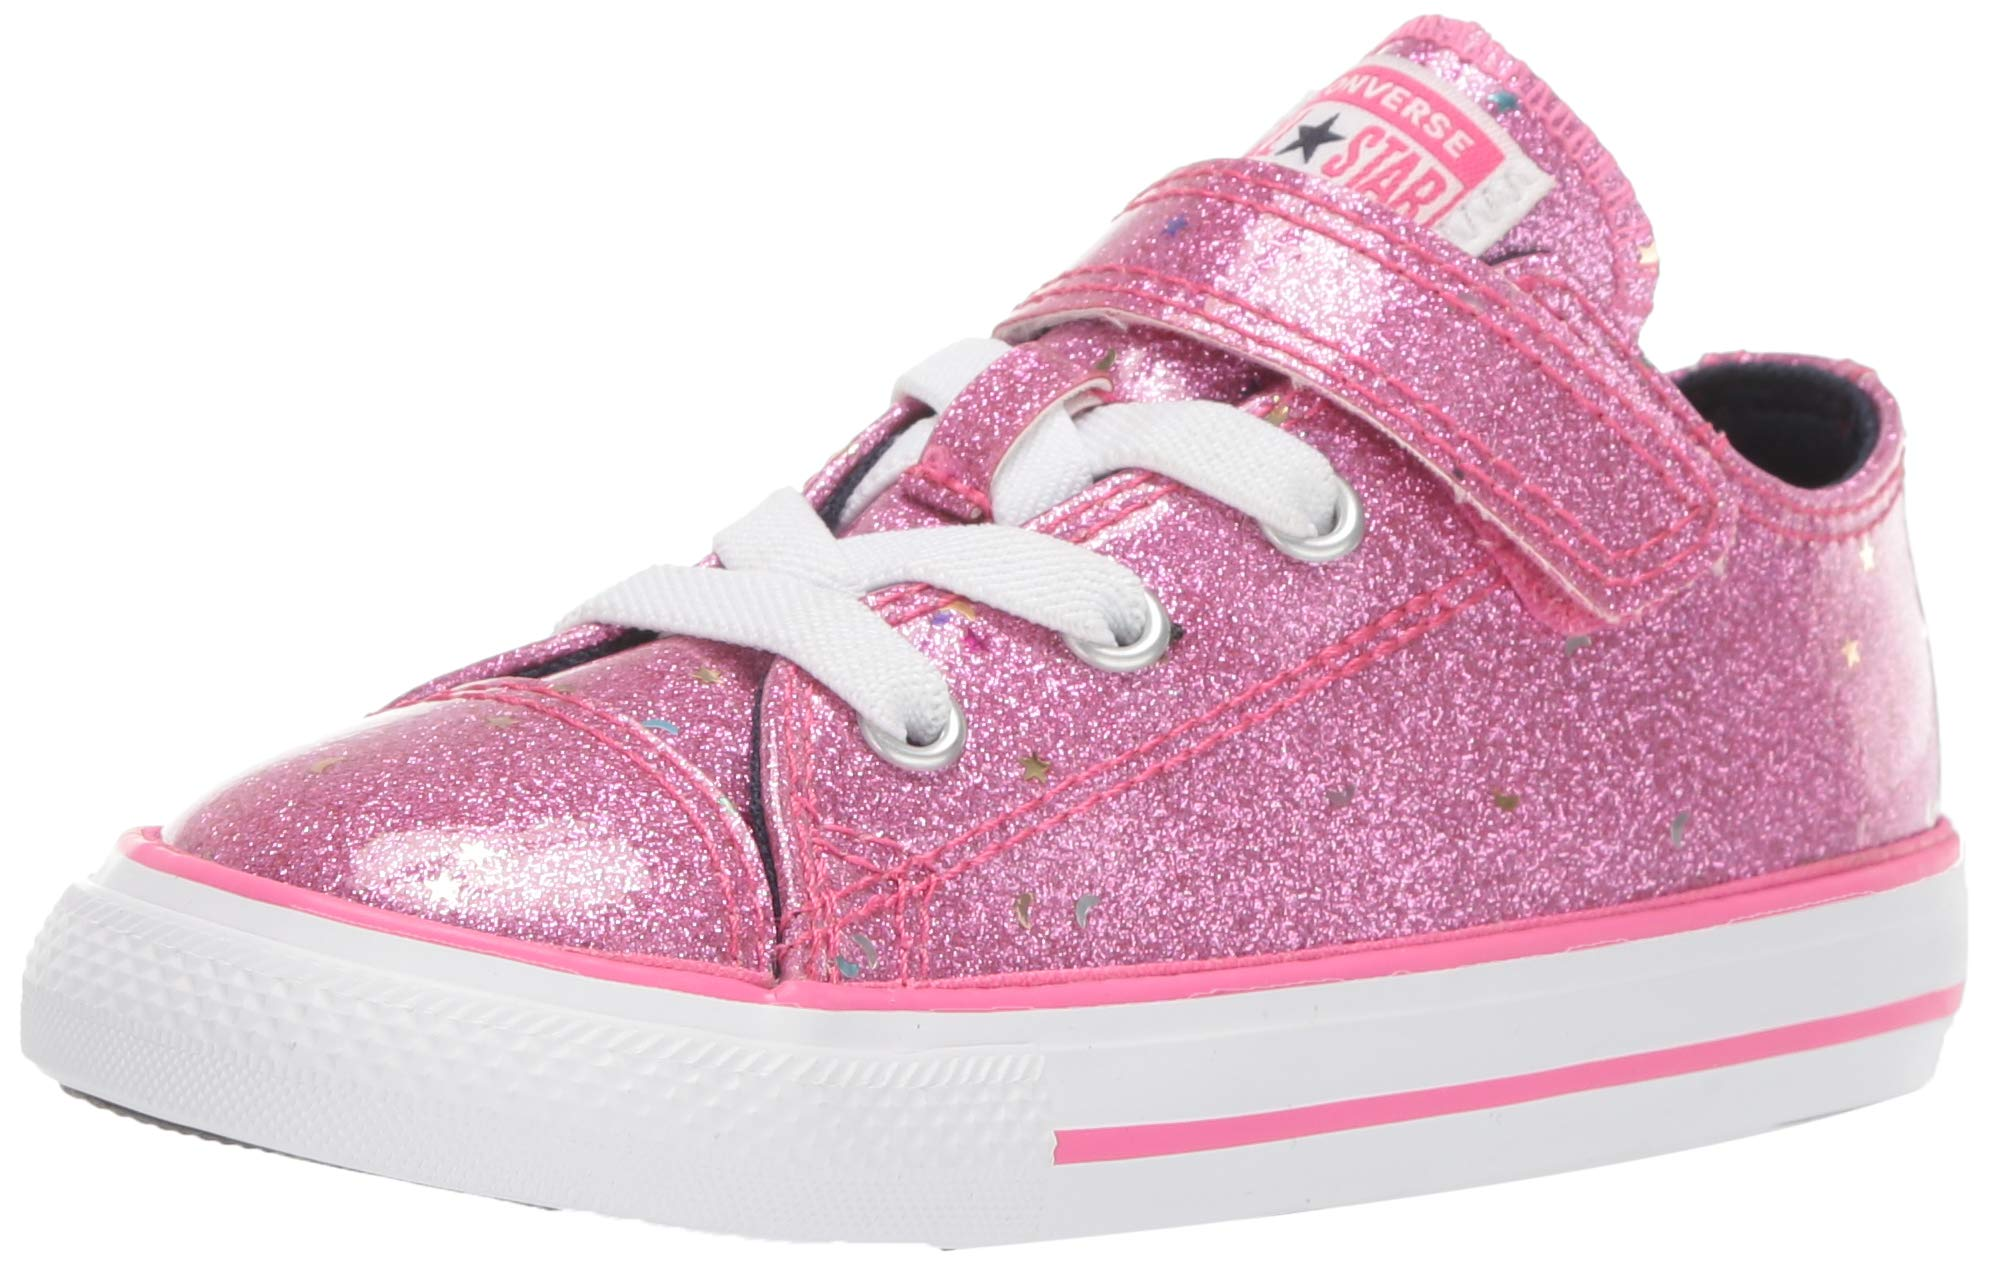 Converse Girls' Chuck Taylor All Star 1V Galaxy Glimmer Sneaker, Mod Pink/Obsidian/White, 8 M US Toddler by Converse